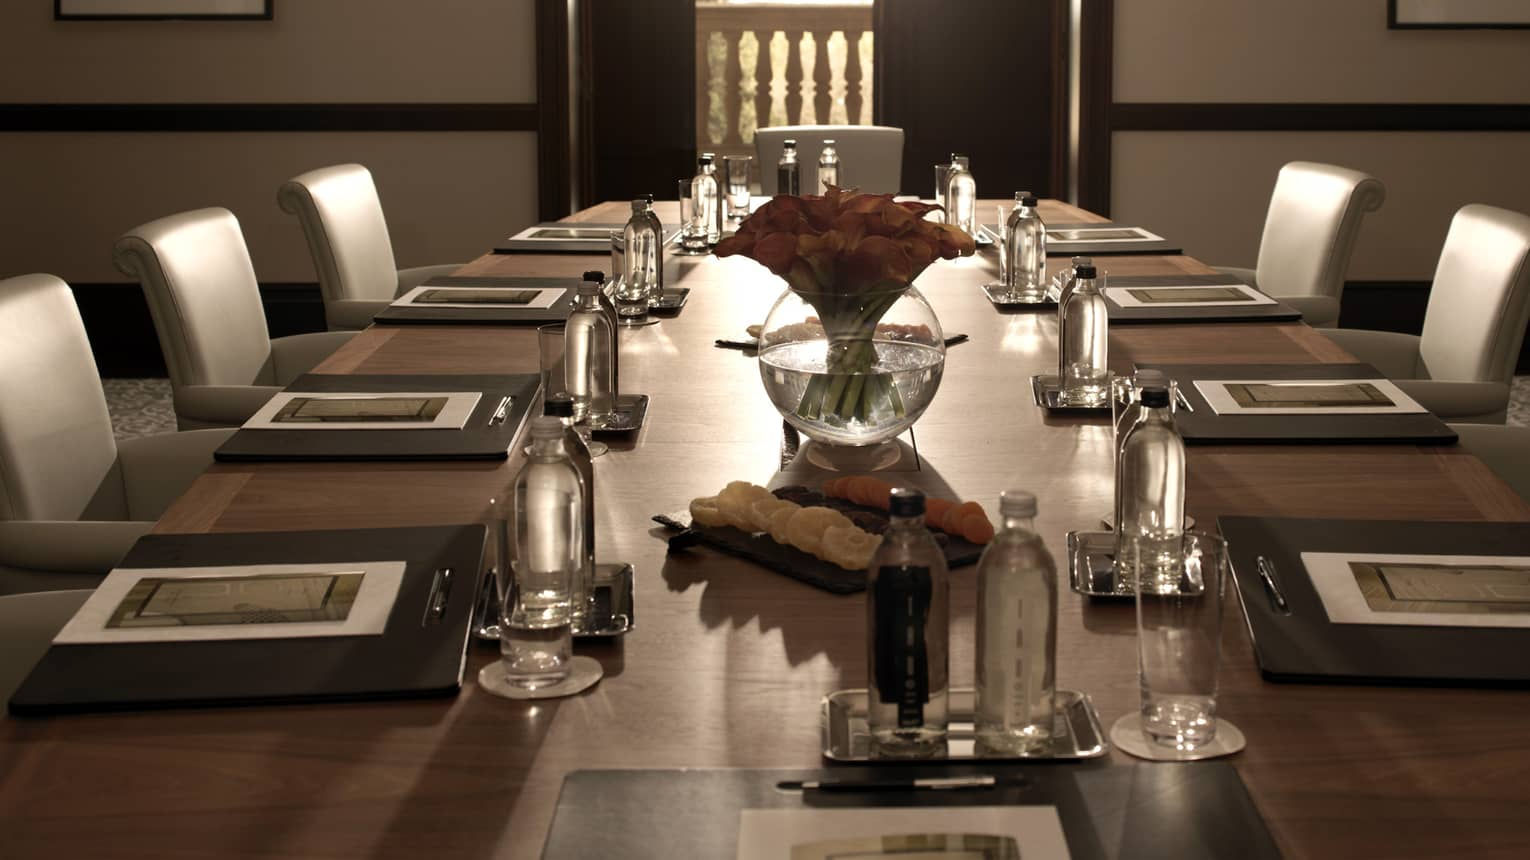 Sleek leather chairs around large, dark wood boardroom table set for business event